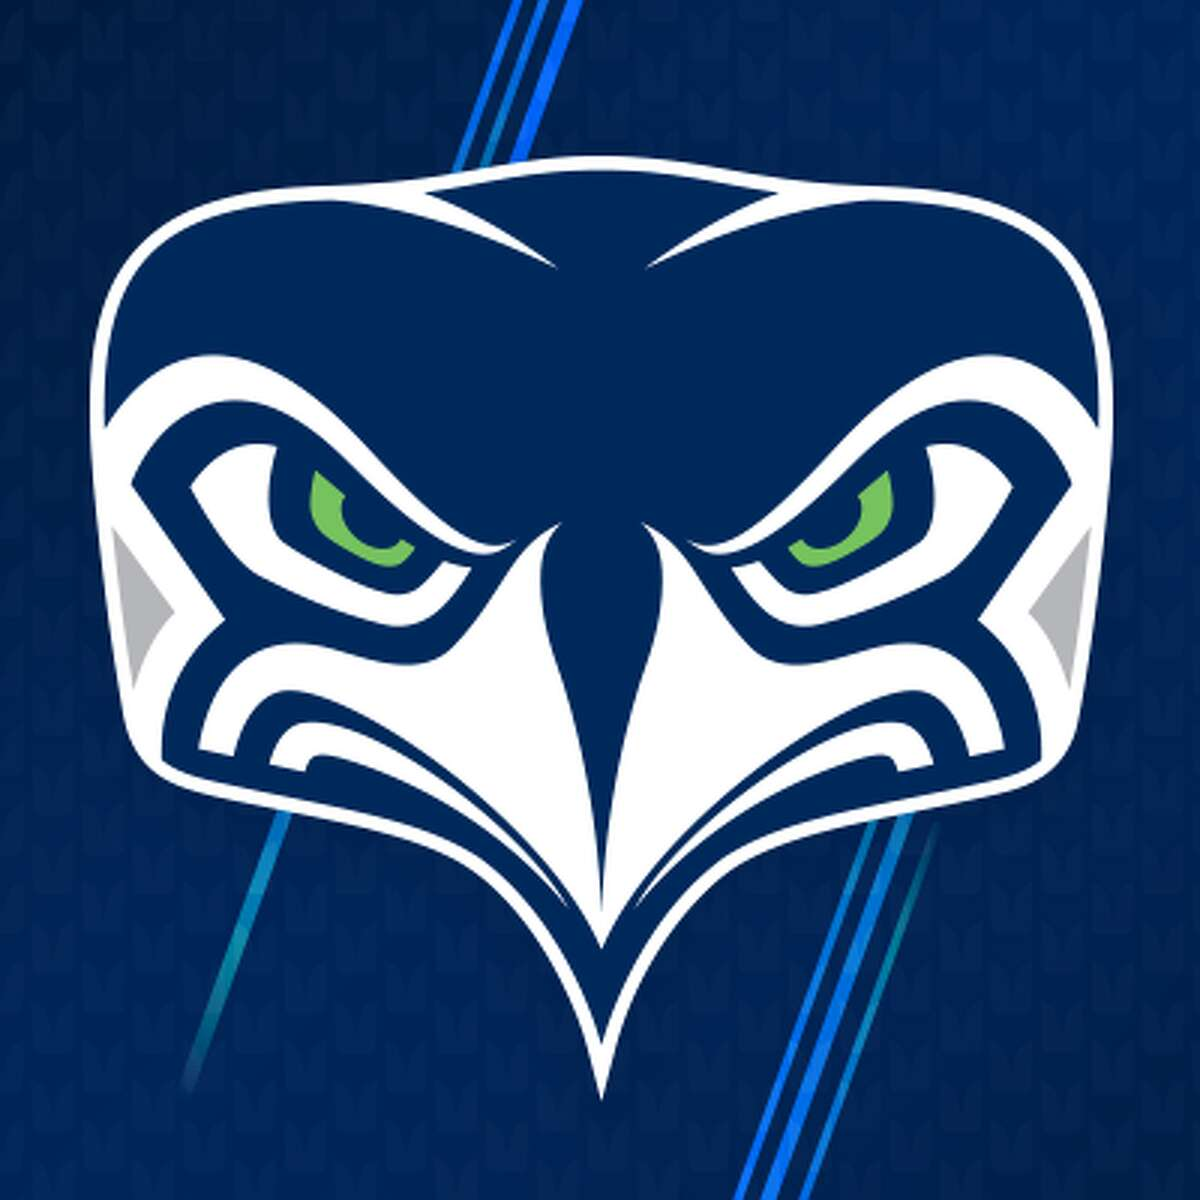 The Seahawks unveiled a new, front-facing logo on social media on Tuesday.